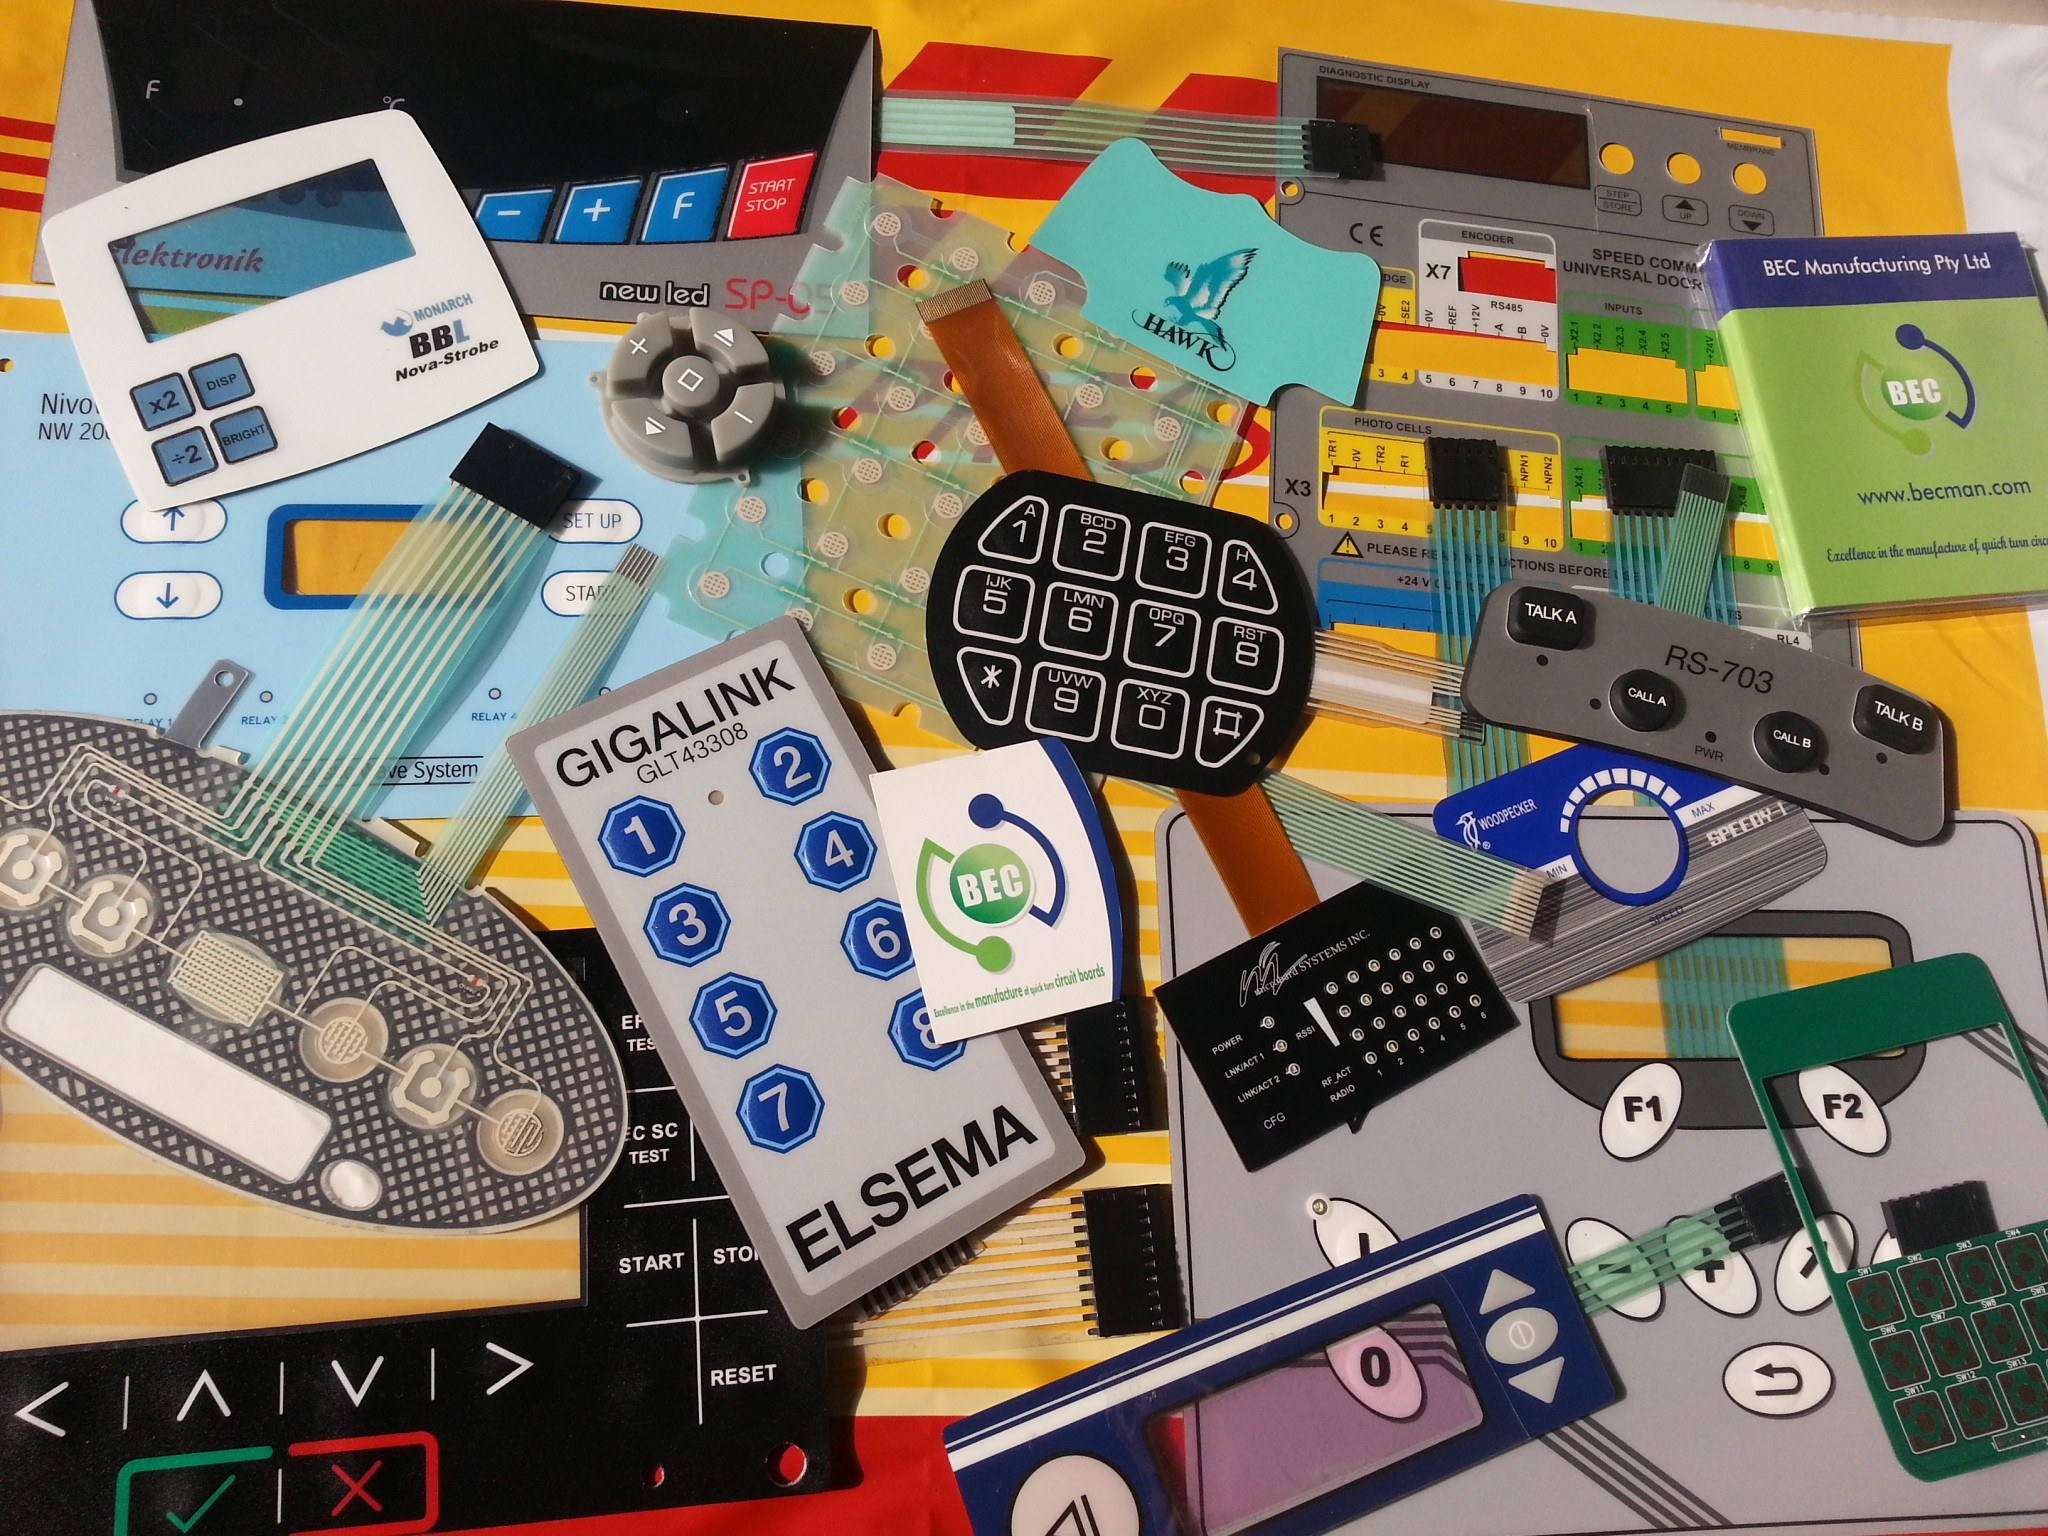 Bec Manufacturing Printed Circuit Board Company Making The Offers Prototype Quantities Of Custom Made Membrane Switches Various Builds To Help You Make Your Projects Have A Professional Look Now